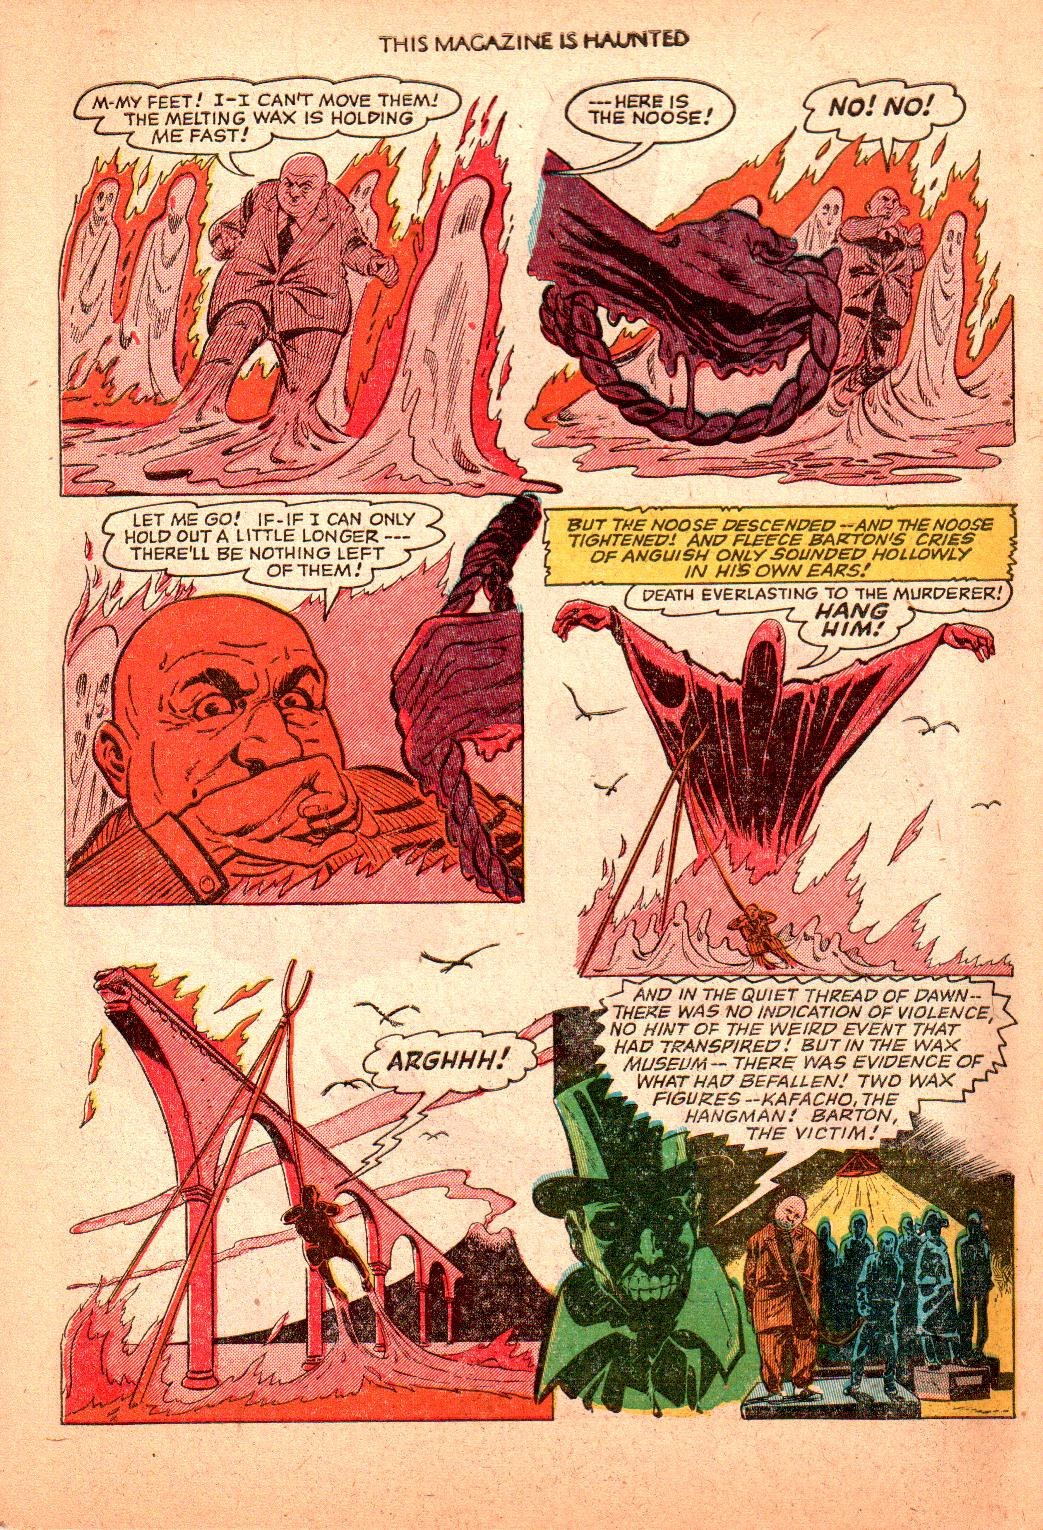 Read online This Magazine Is Haunted comic -  Issue #4 - 34